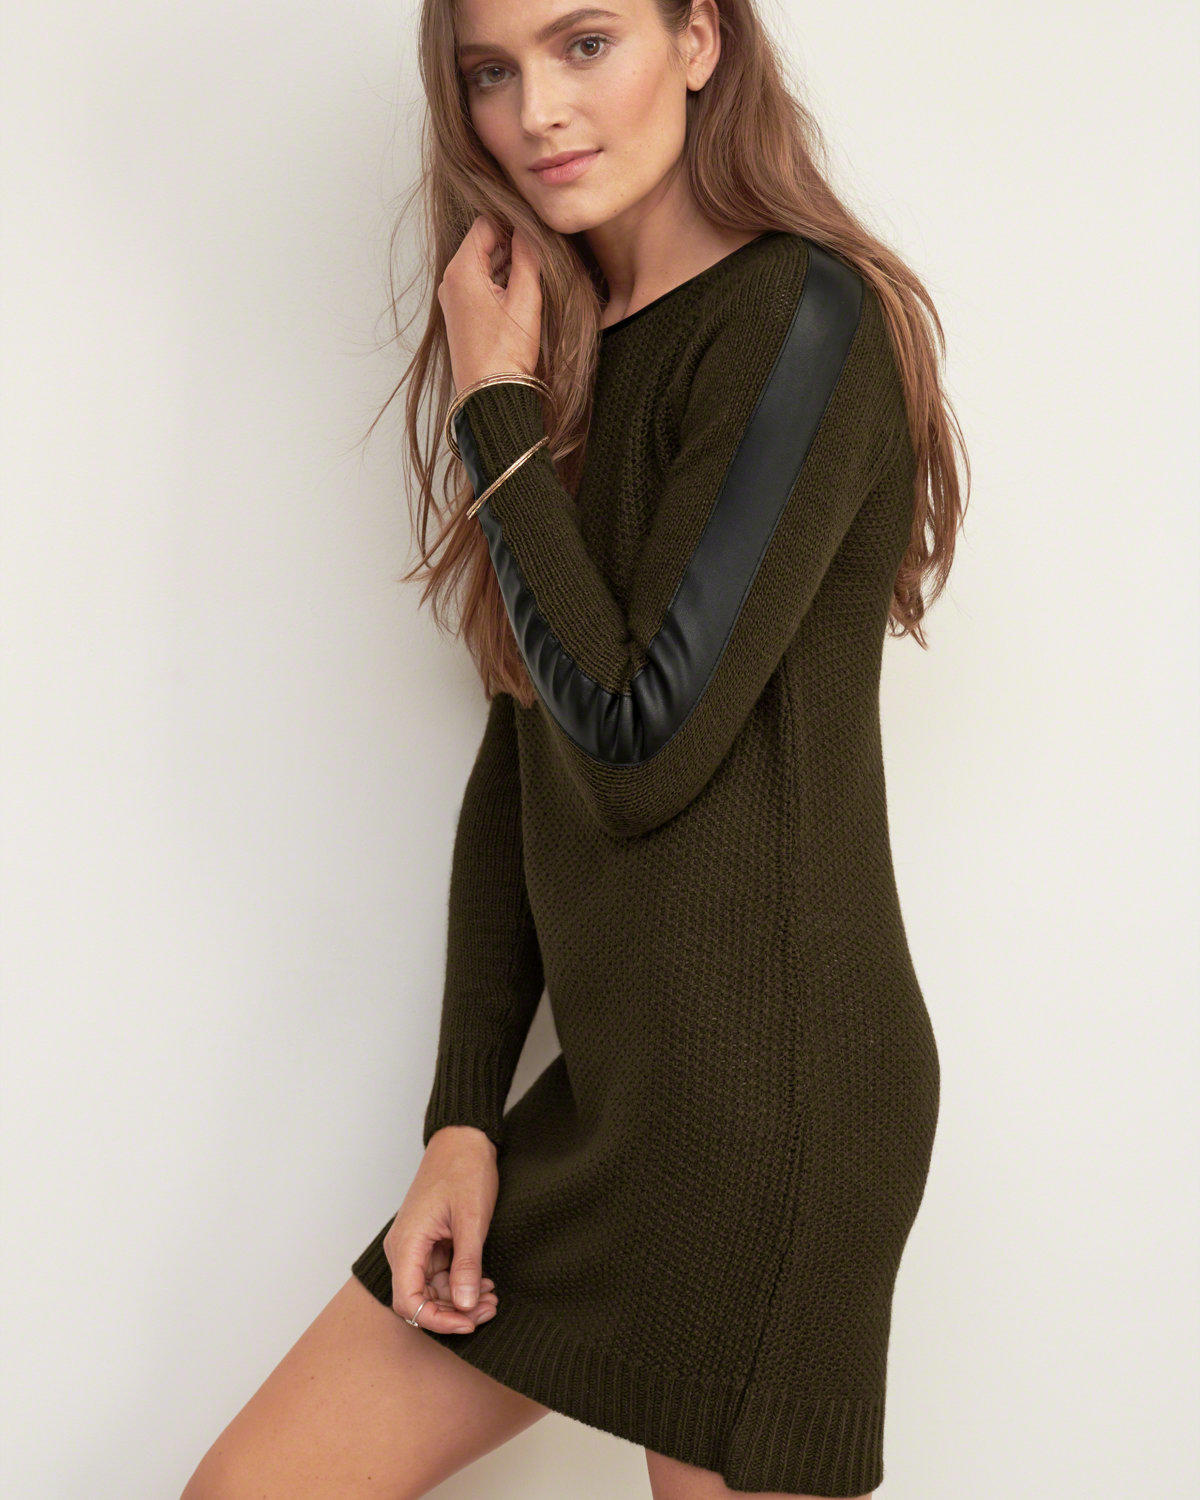 f5488c700791b Faux Leather Trim Sweater Dress from Abercrombie   Fitch